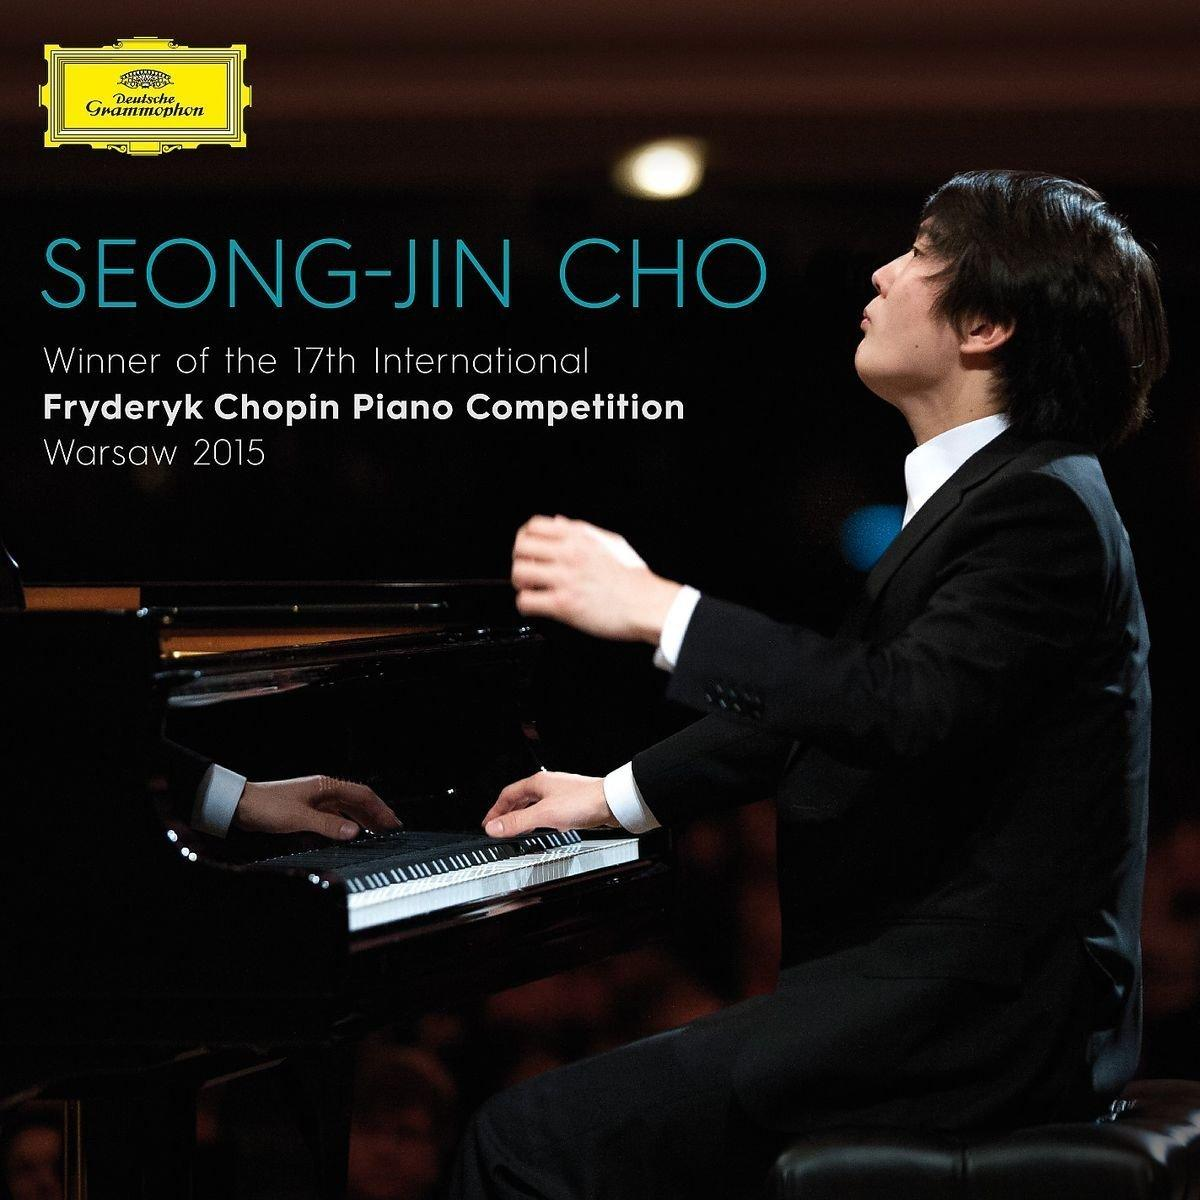 Winner of the 17th International Fryderyk Chopin Piano Competition 2015: Seong-Jin Cho